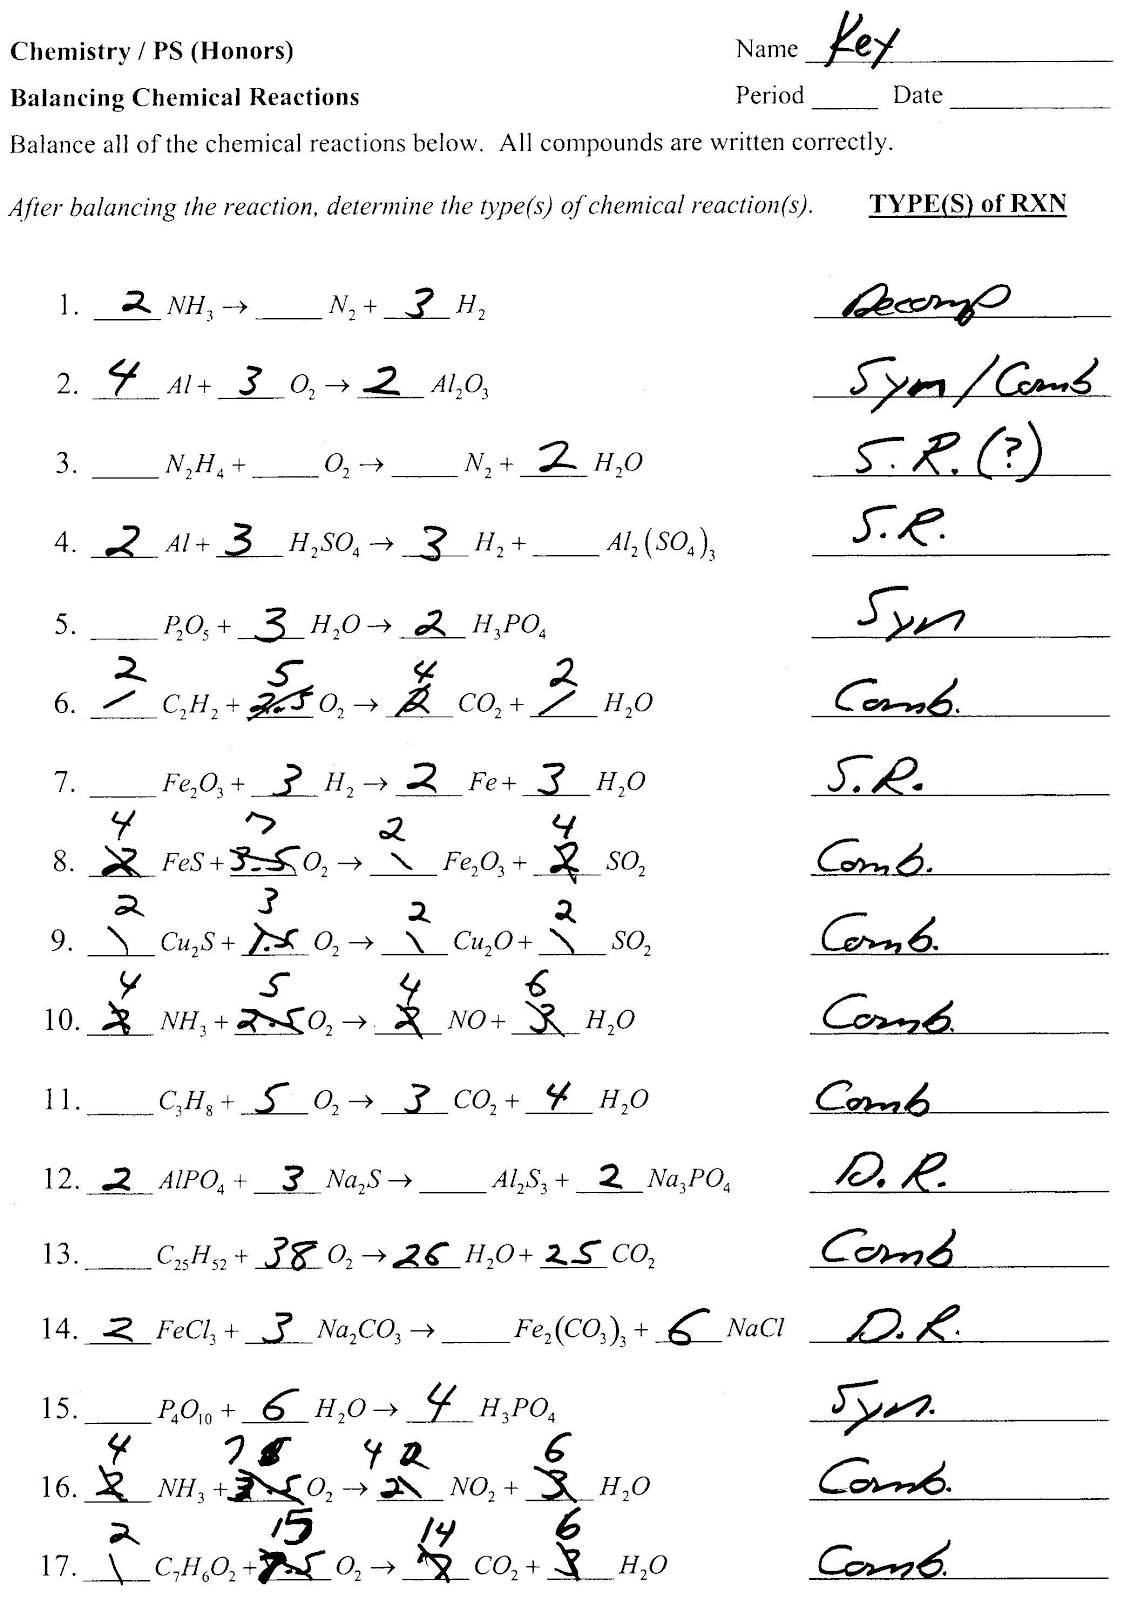 Mr Brueckners Chemistry Class HHS 201112 February 2012 – Writing and Balancing Chemical Equations Worksheet